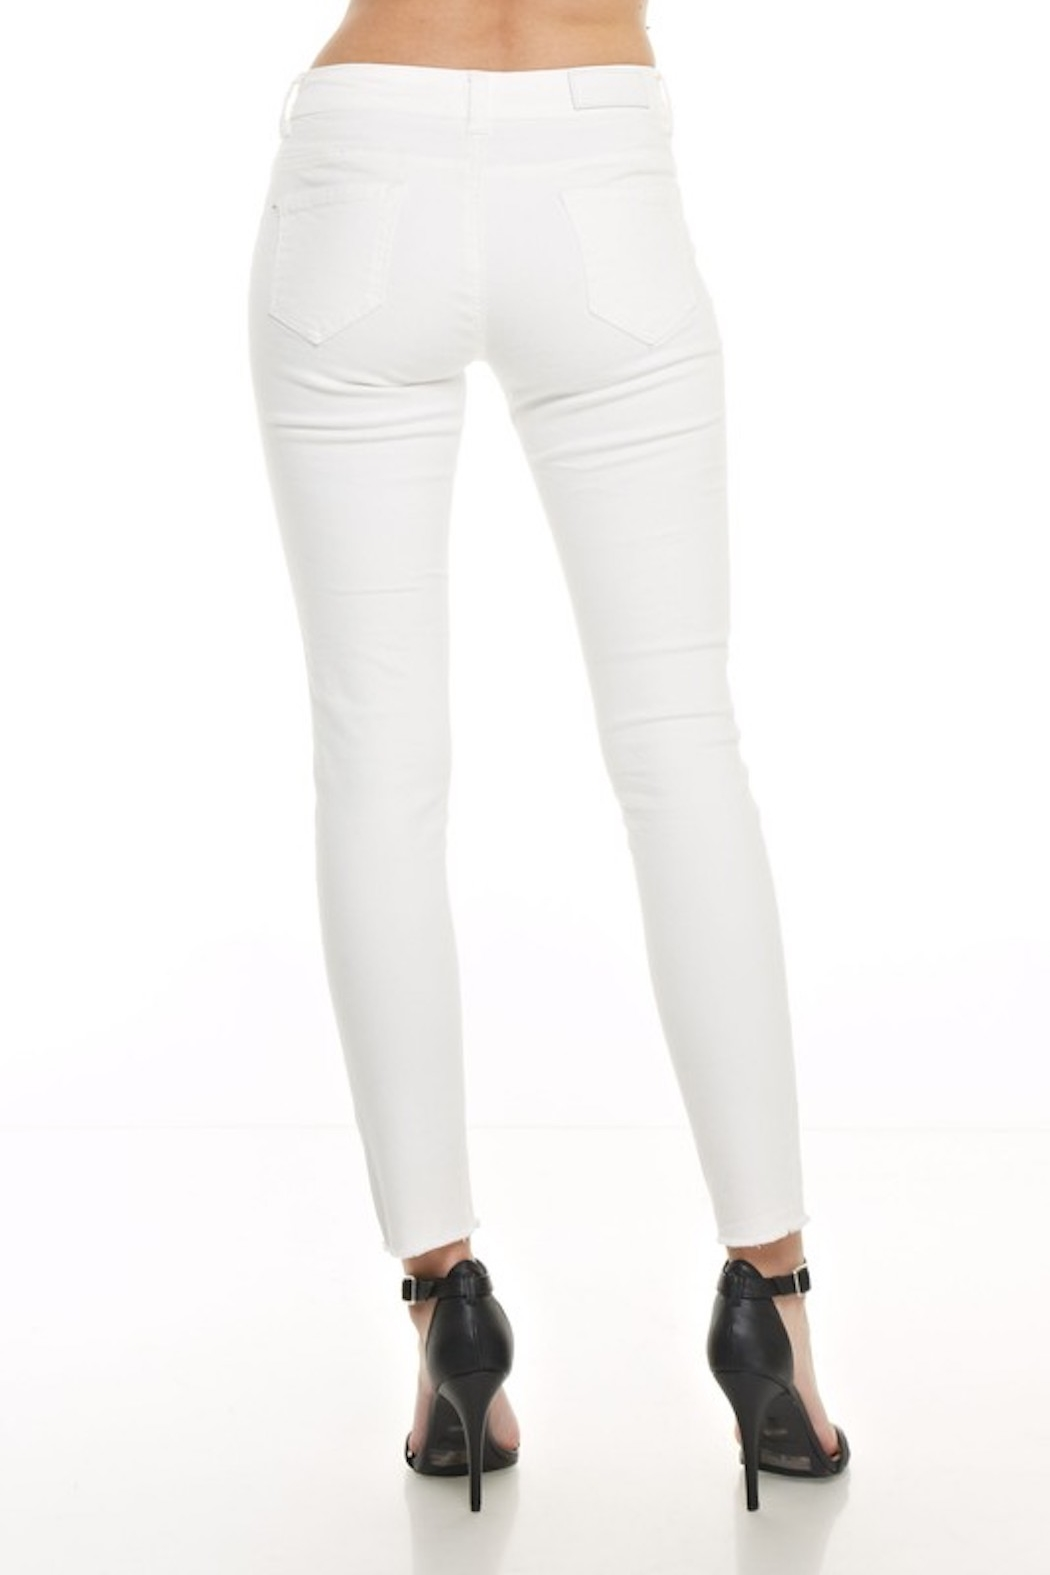 Monkey Ride Jeans Ripped Skinny Jeans - Side Cropped Image